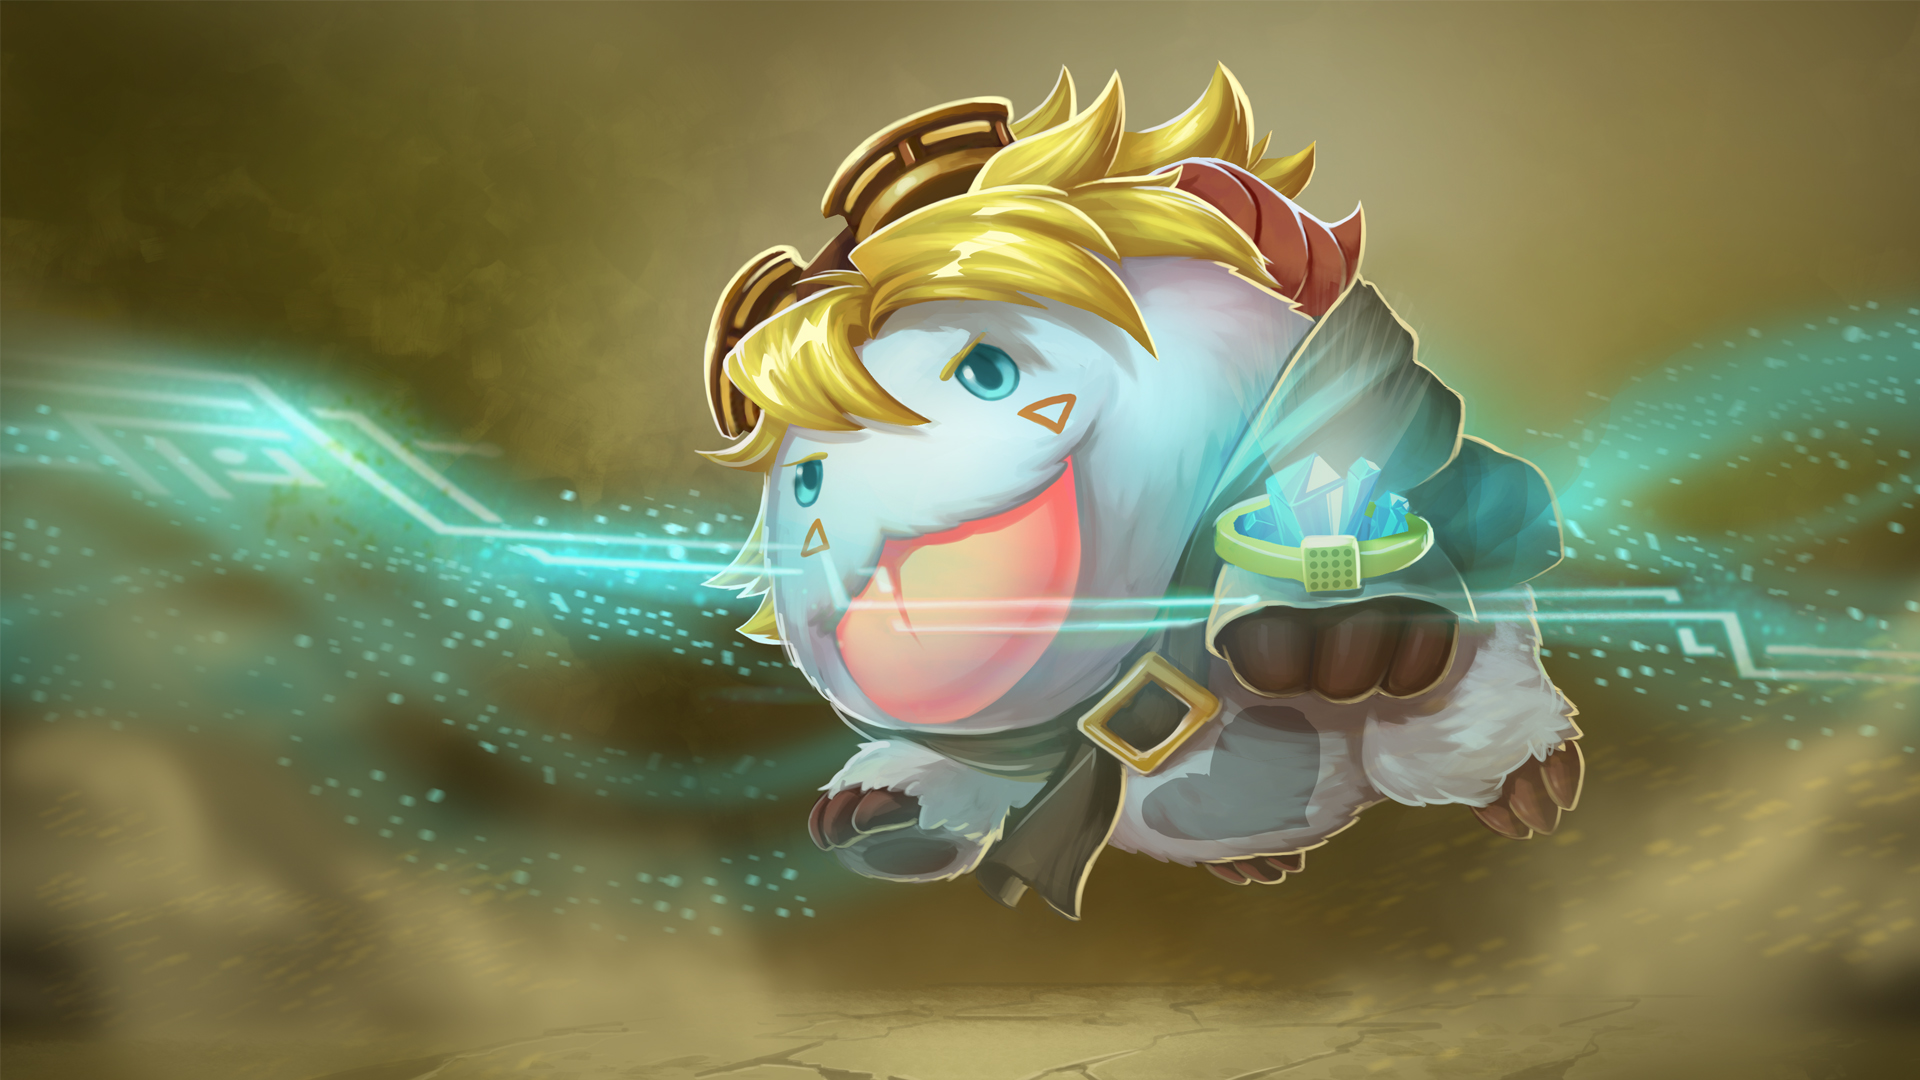 Ezreal Poro - Wallpapers HD